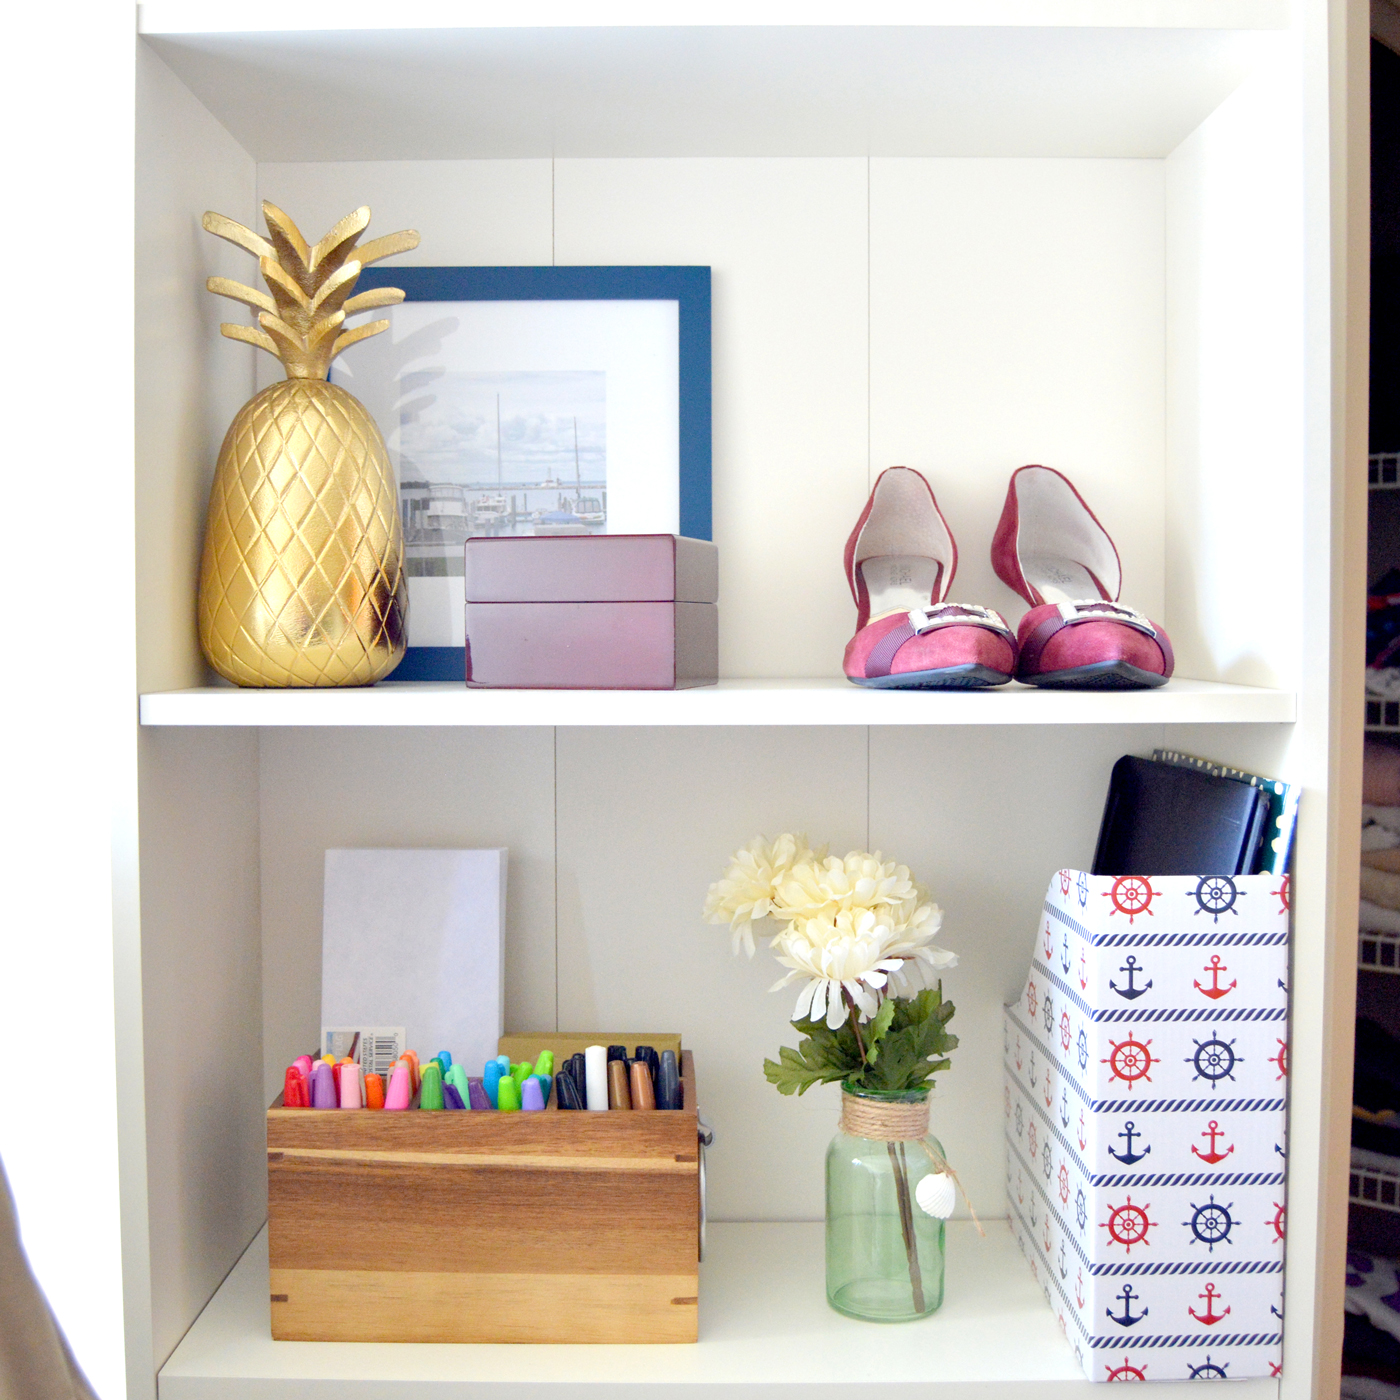 I Moved! Here's How I Decorated a New Home